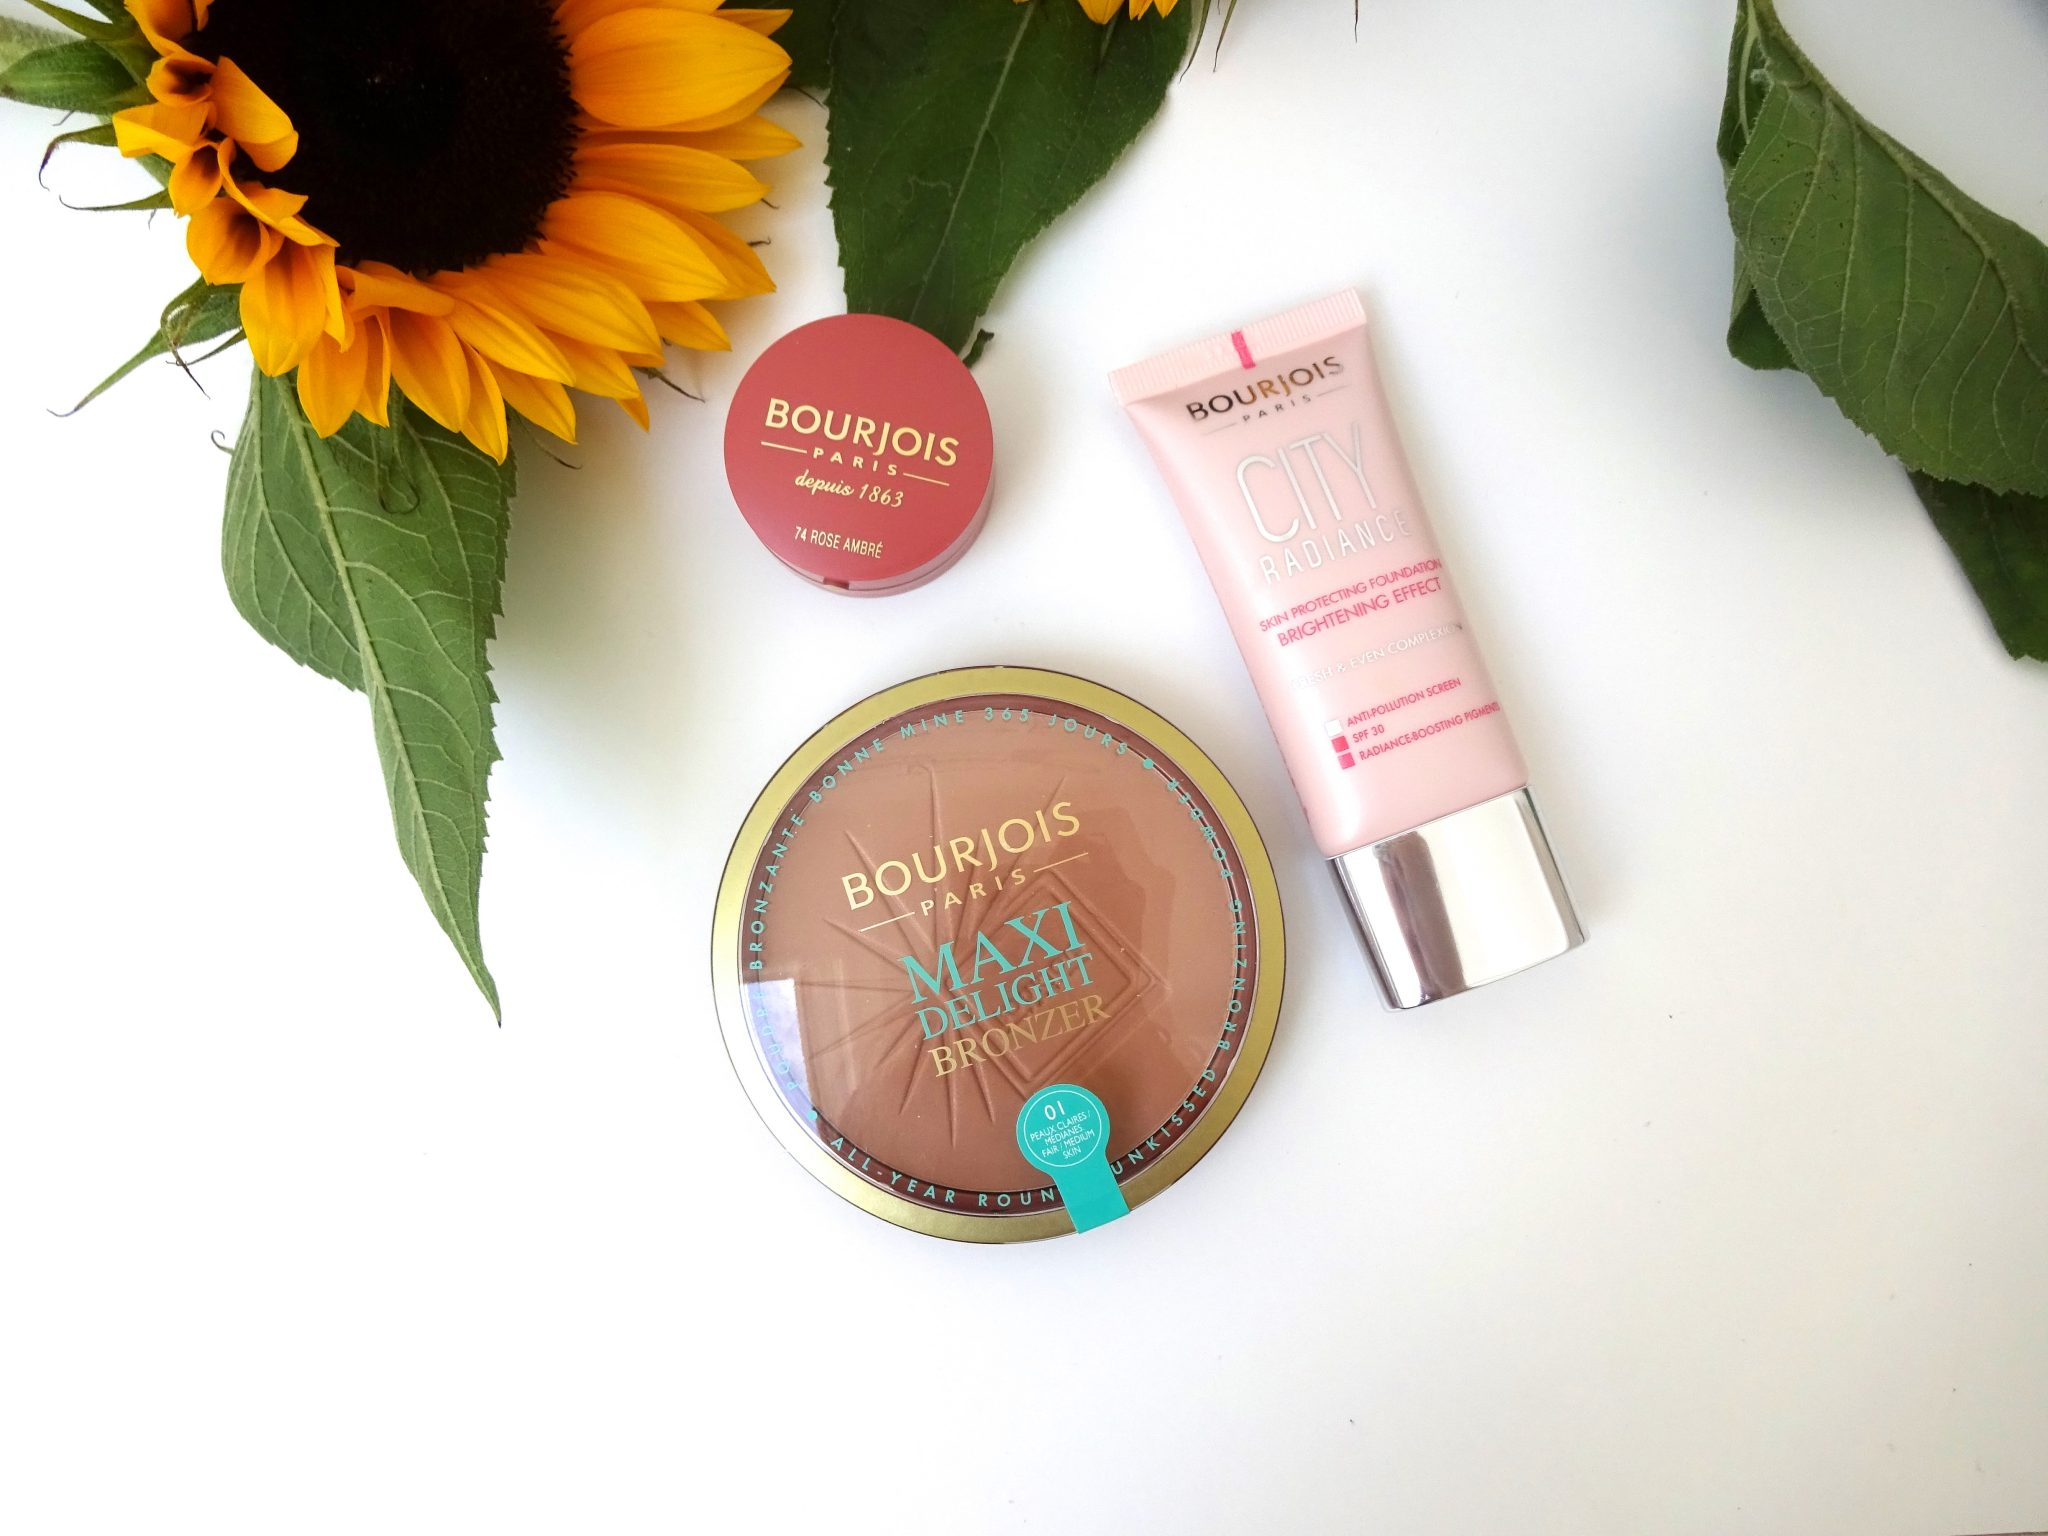 Bourjois summer in the city